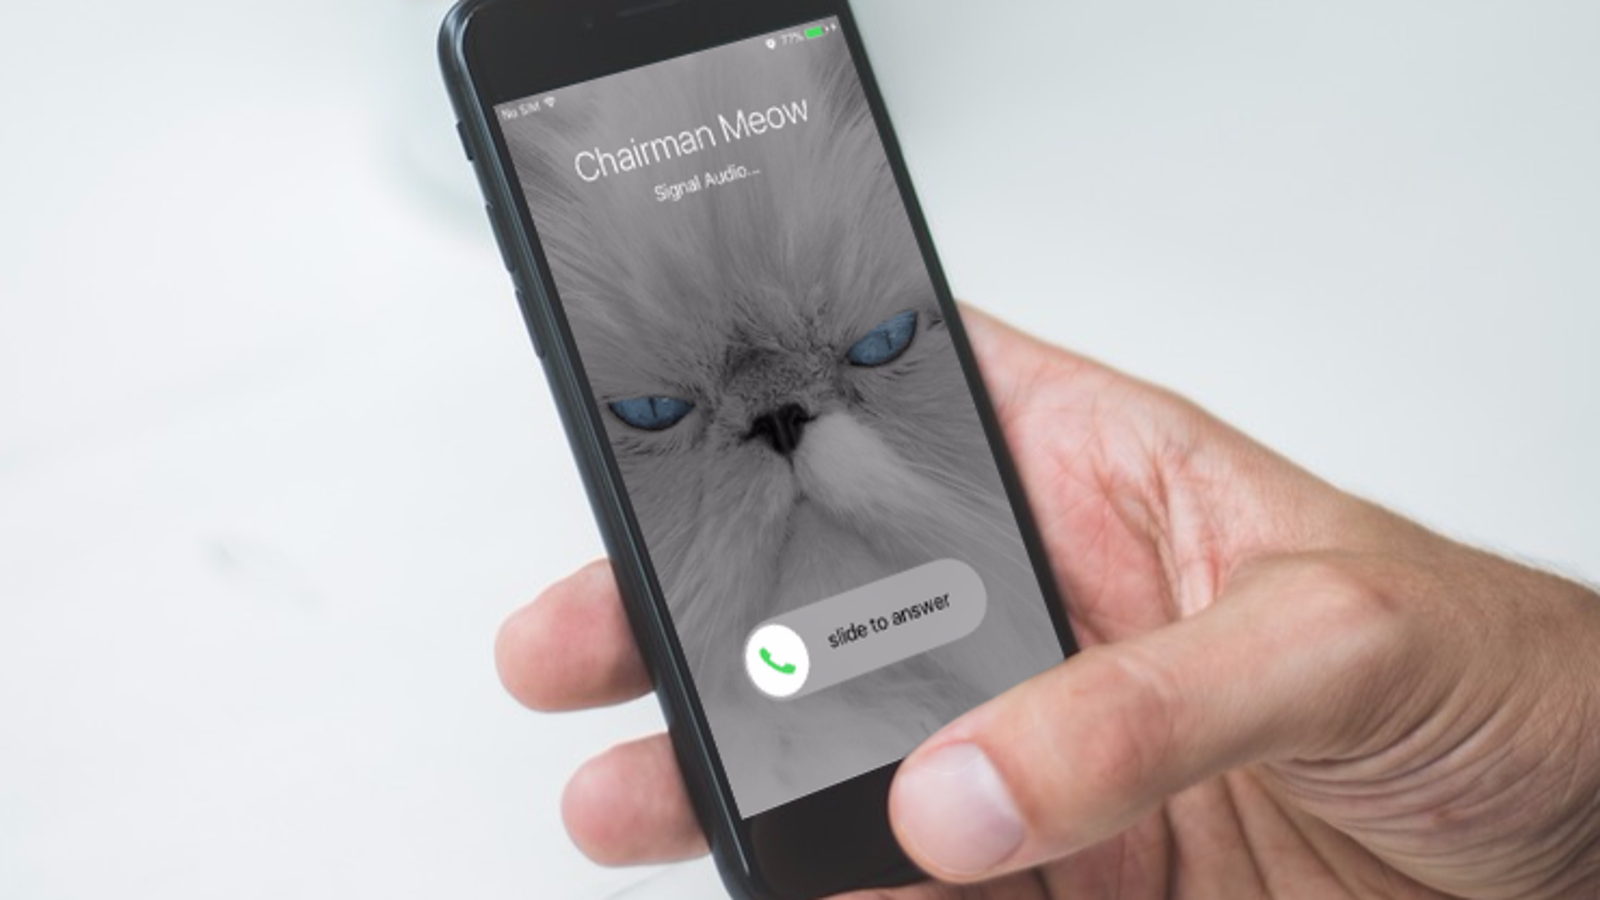 How to Use Signal Without Revealing Your Private Phone Number